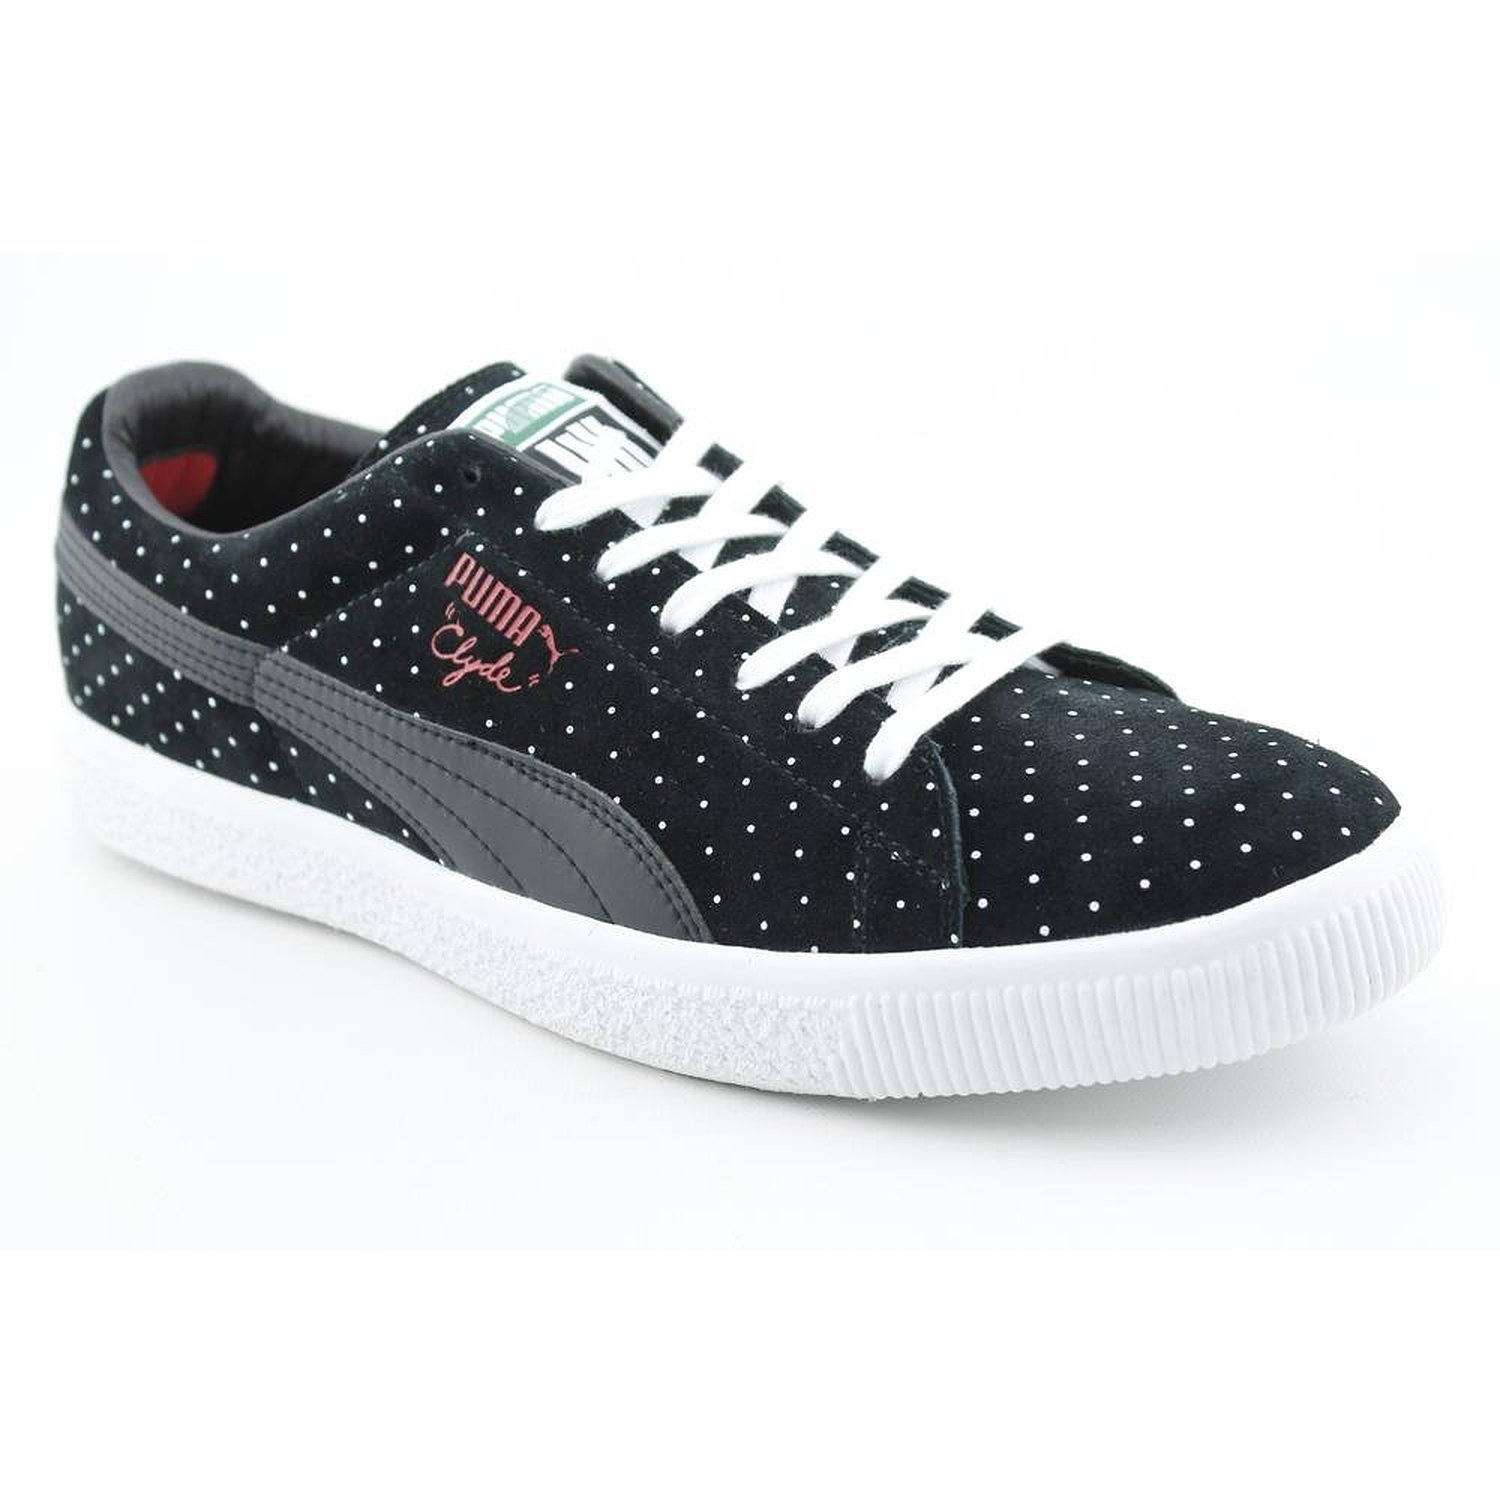 ba91395bce193 Cheap Puma Casual Sneakers, find Puma Casual Sneakers deals on line ...